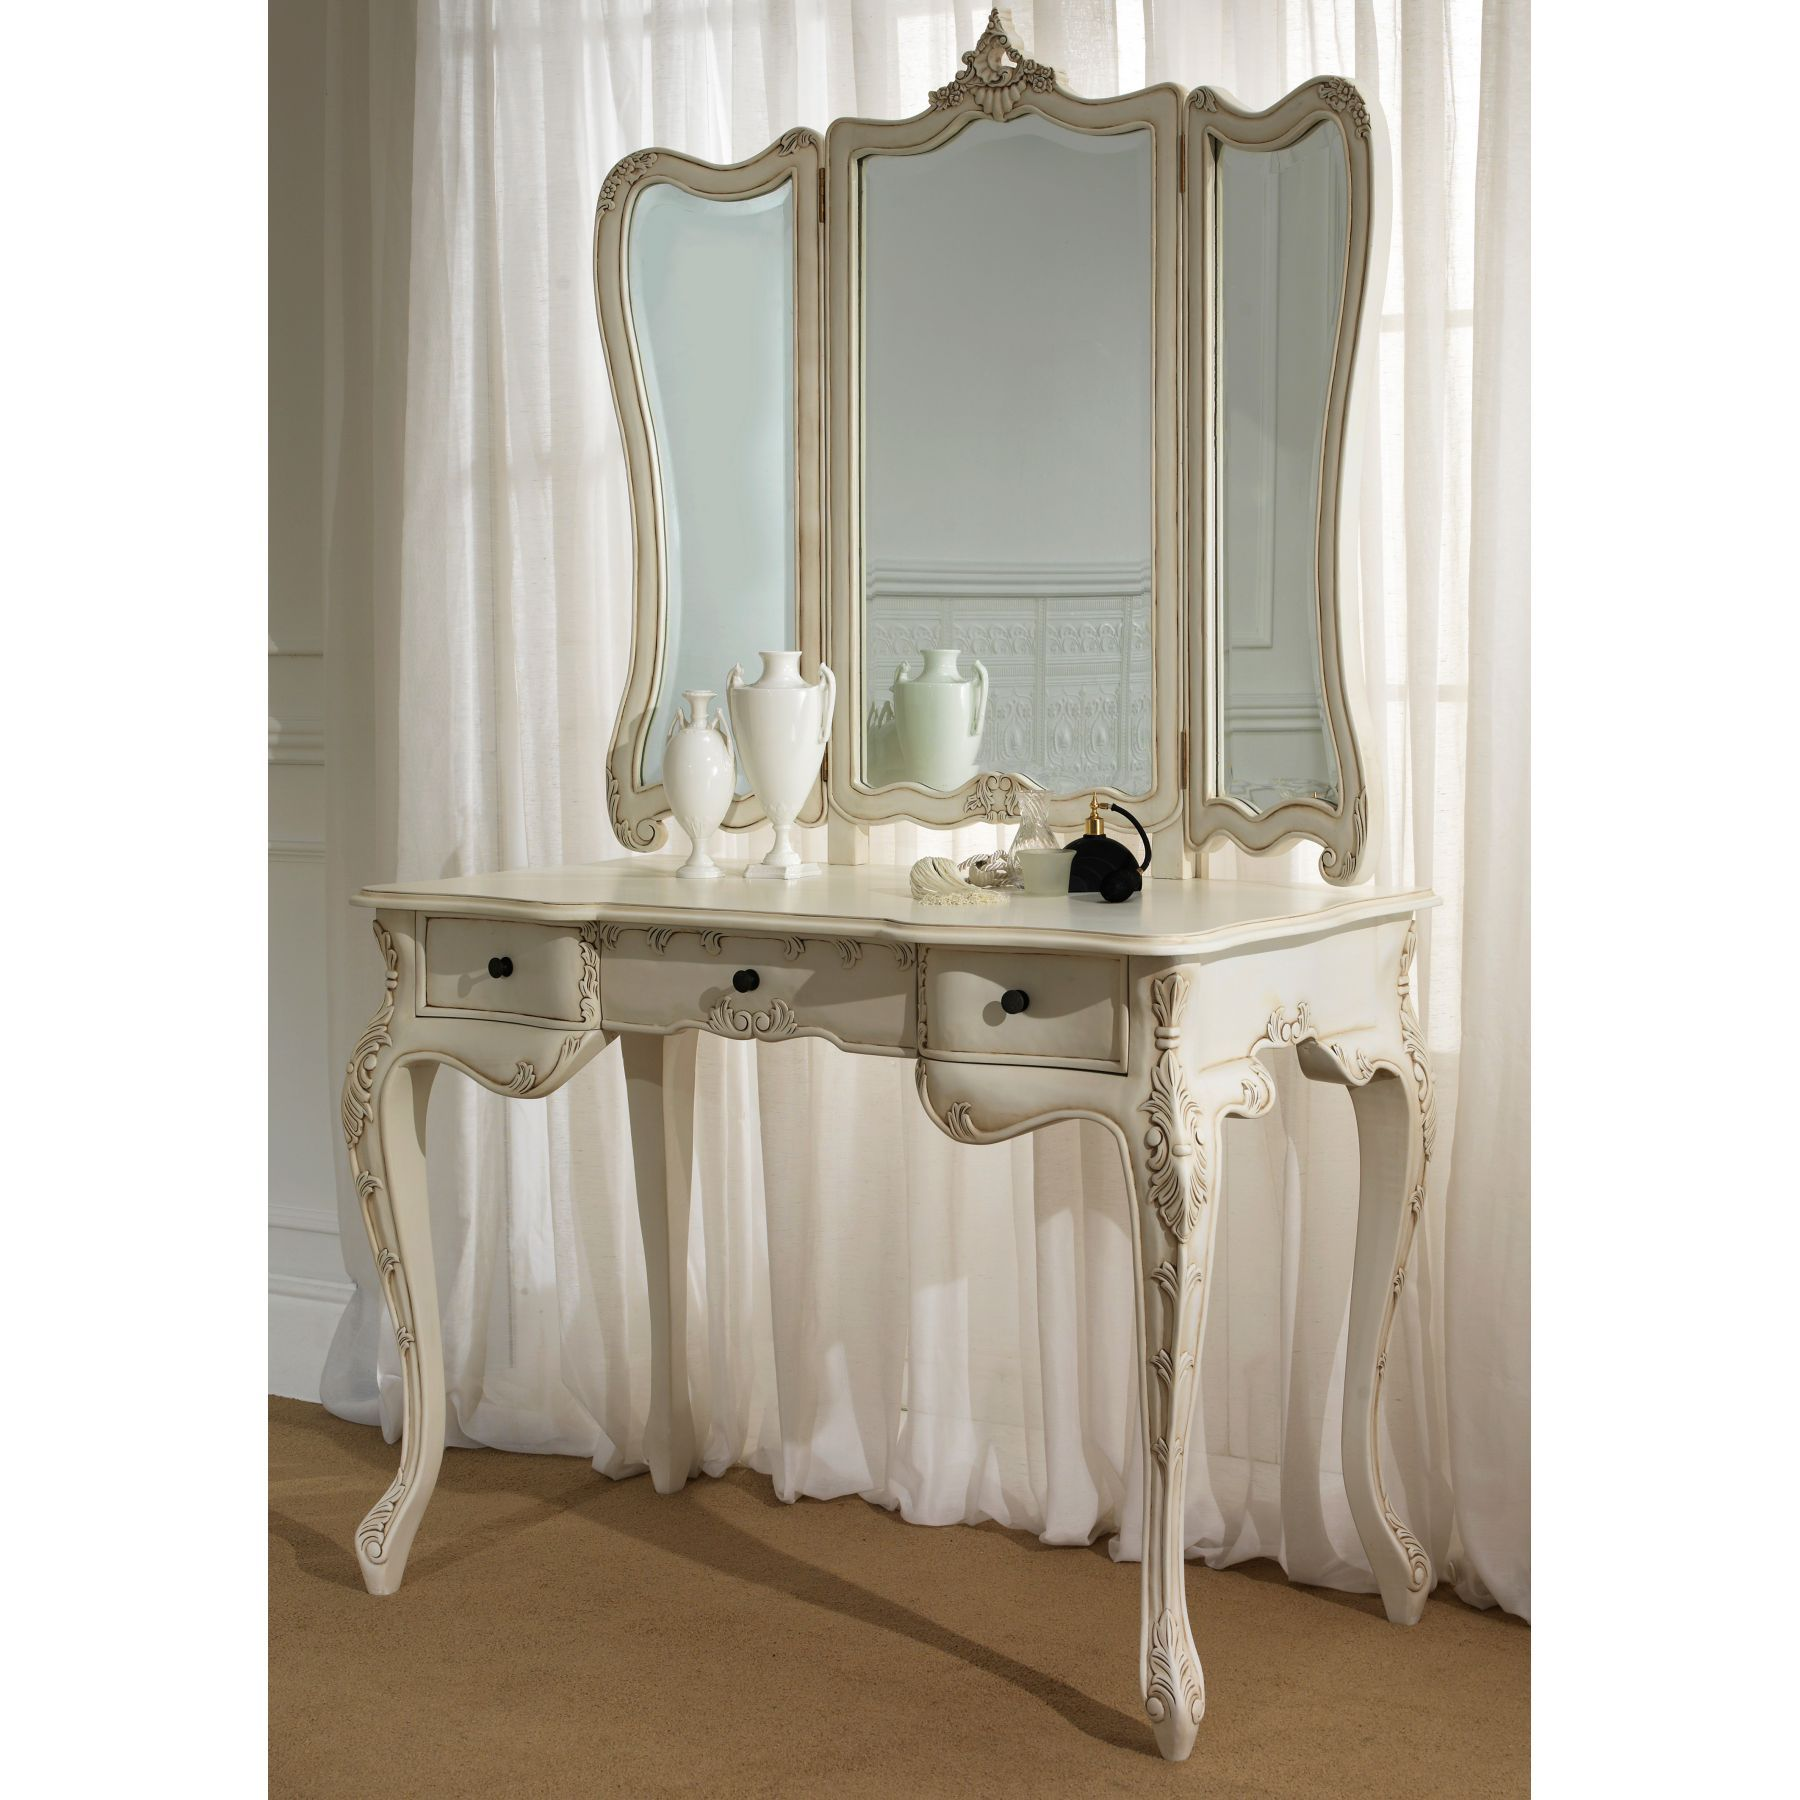 small vanity table without mirror. White Vintage Dressing Table Without Mirror  or a dressing stand is just one of the main furniture in residential hous Decoration Antique Wooden With Three Drawers As